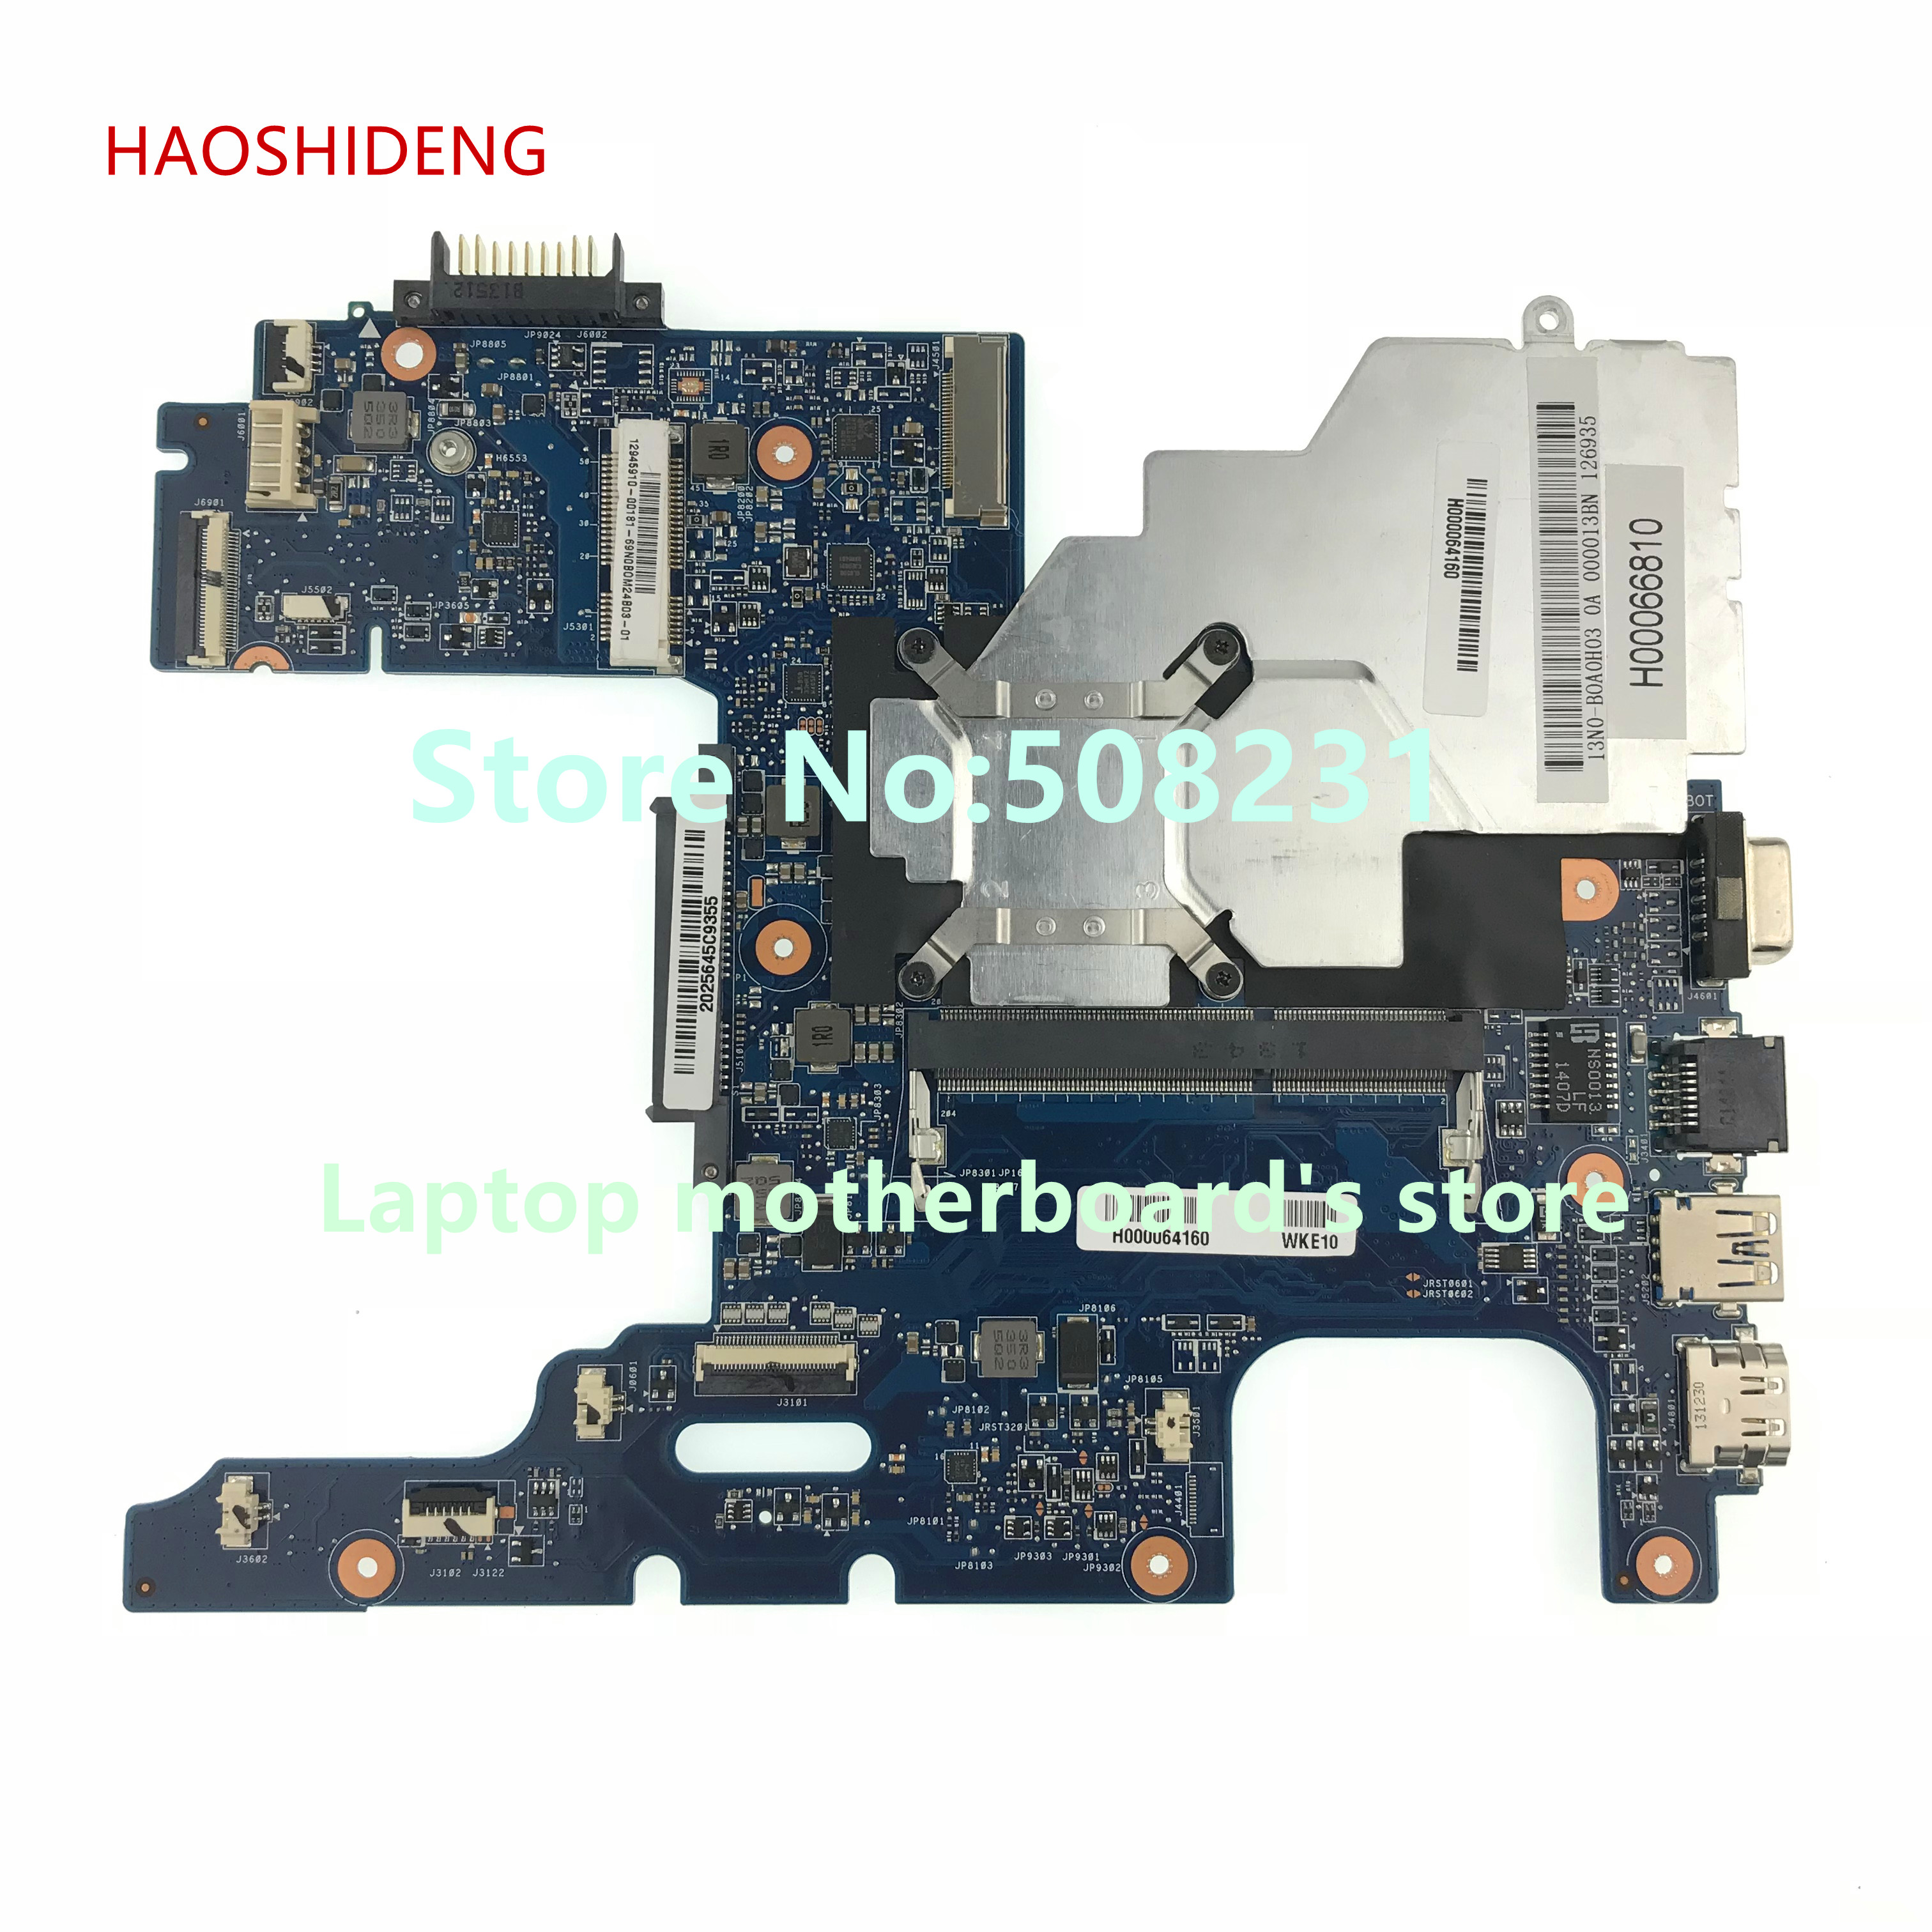 HAOSHIDENG H000064160 mainboard For toshiba satellite NB15 NB15T series laptop motherboard fully Tested nokotion h000064160 main board for toshiba satellite nb15 nb15t ma10 laptop motherboard with n2810 cpu onboard